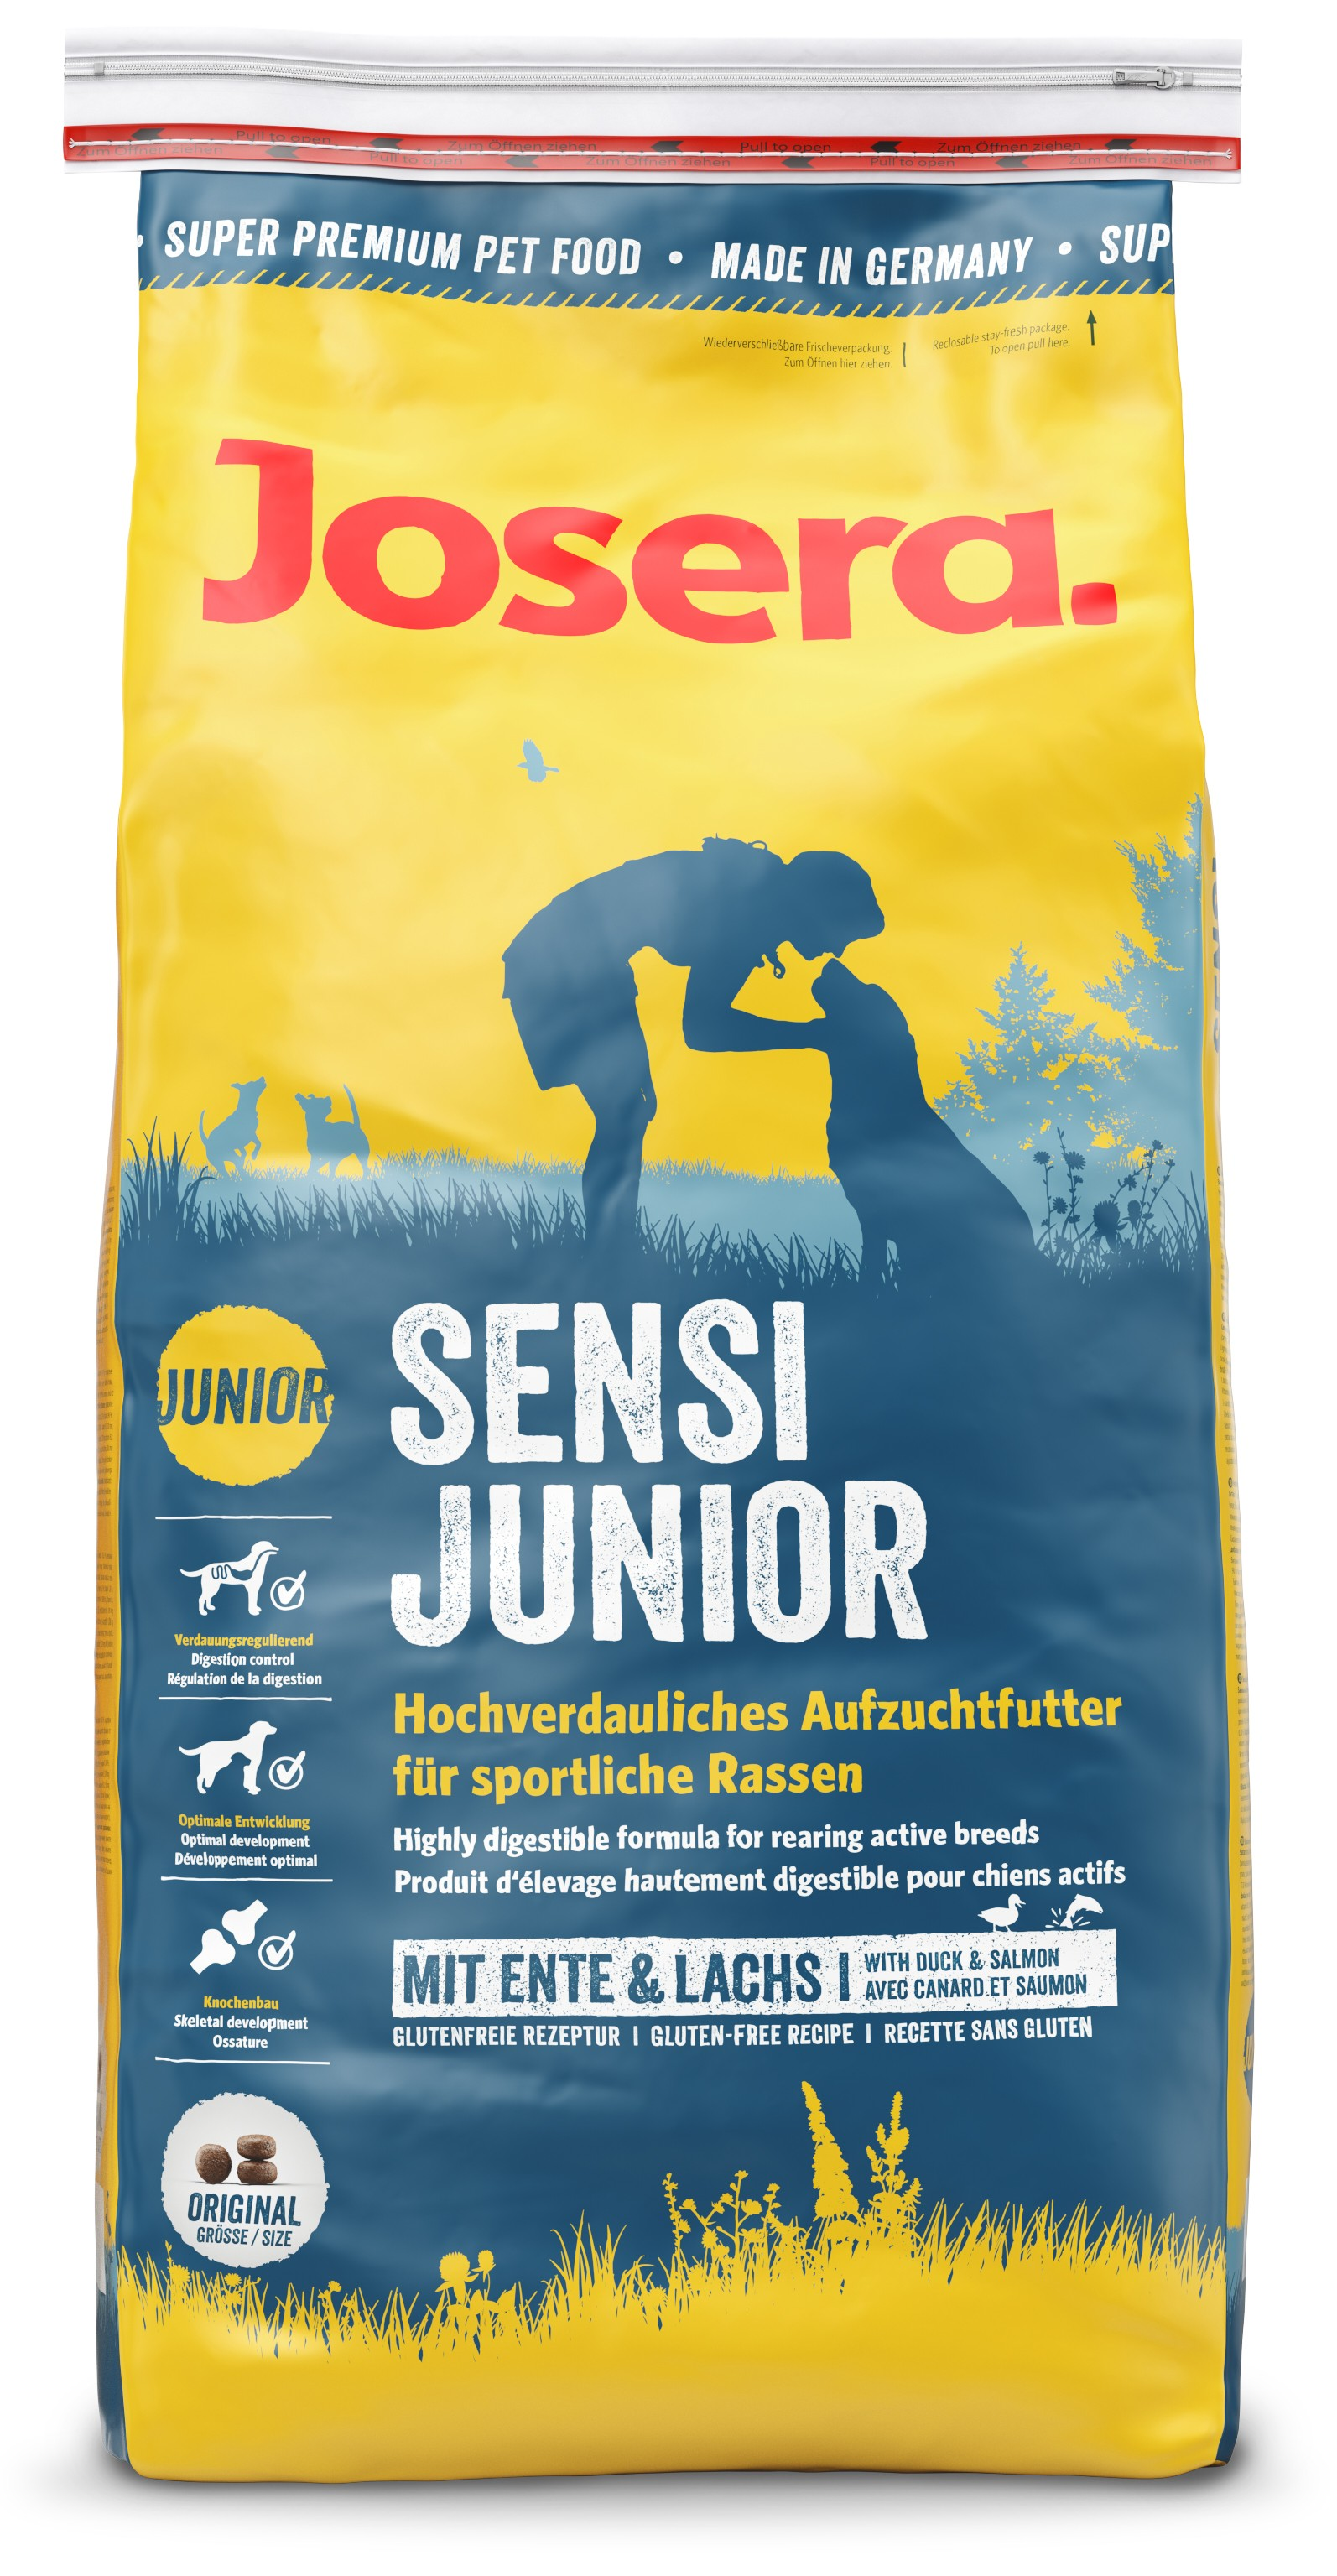 Josera Super Premium Sensi Junior - (new pack)